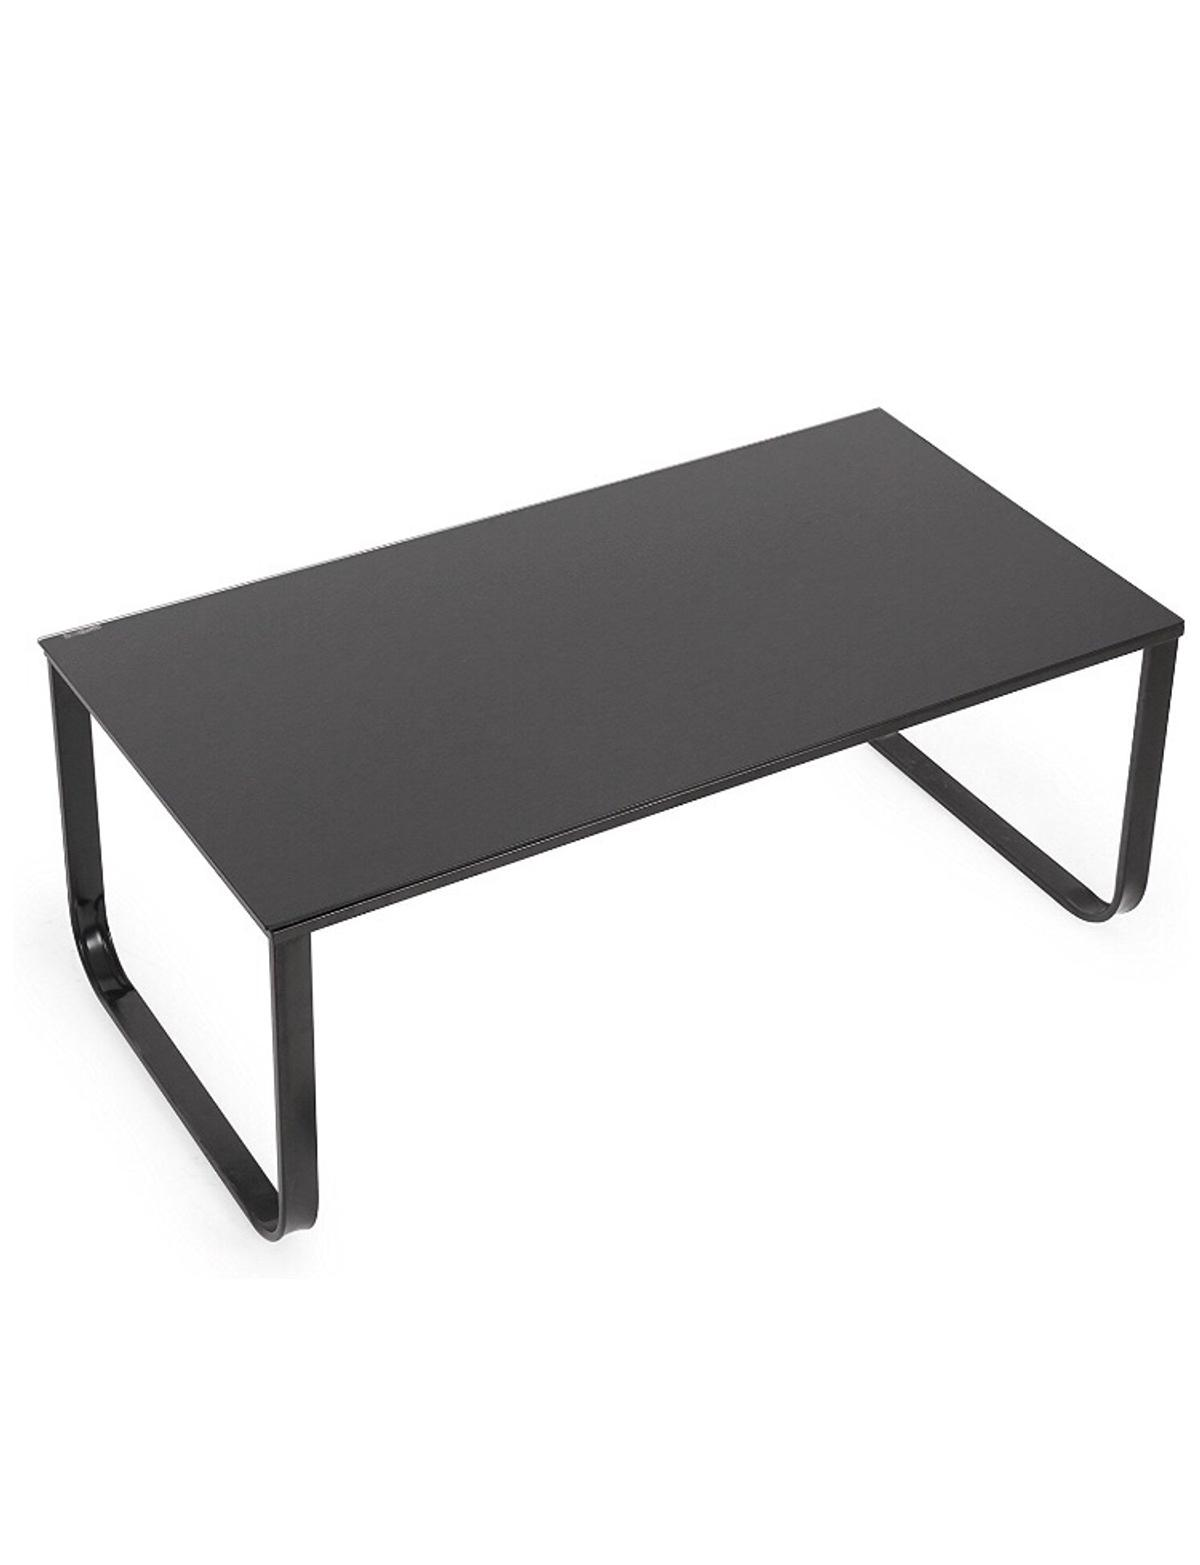 Picture of: Ofcasa Glass Coffee Table Modern Design Coffee Table With Metal Legs Side Table Living Room Table Black Glass Furniture Living Room Furniture